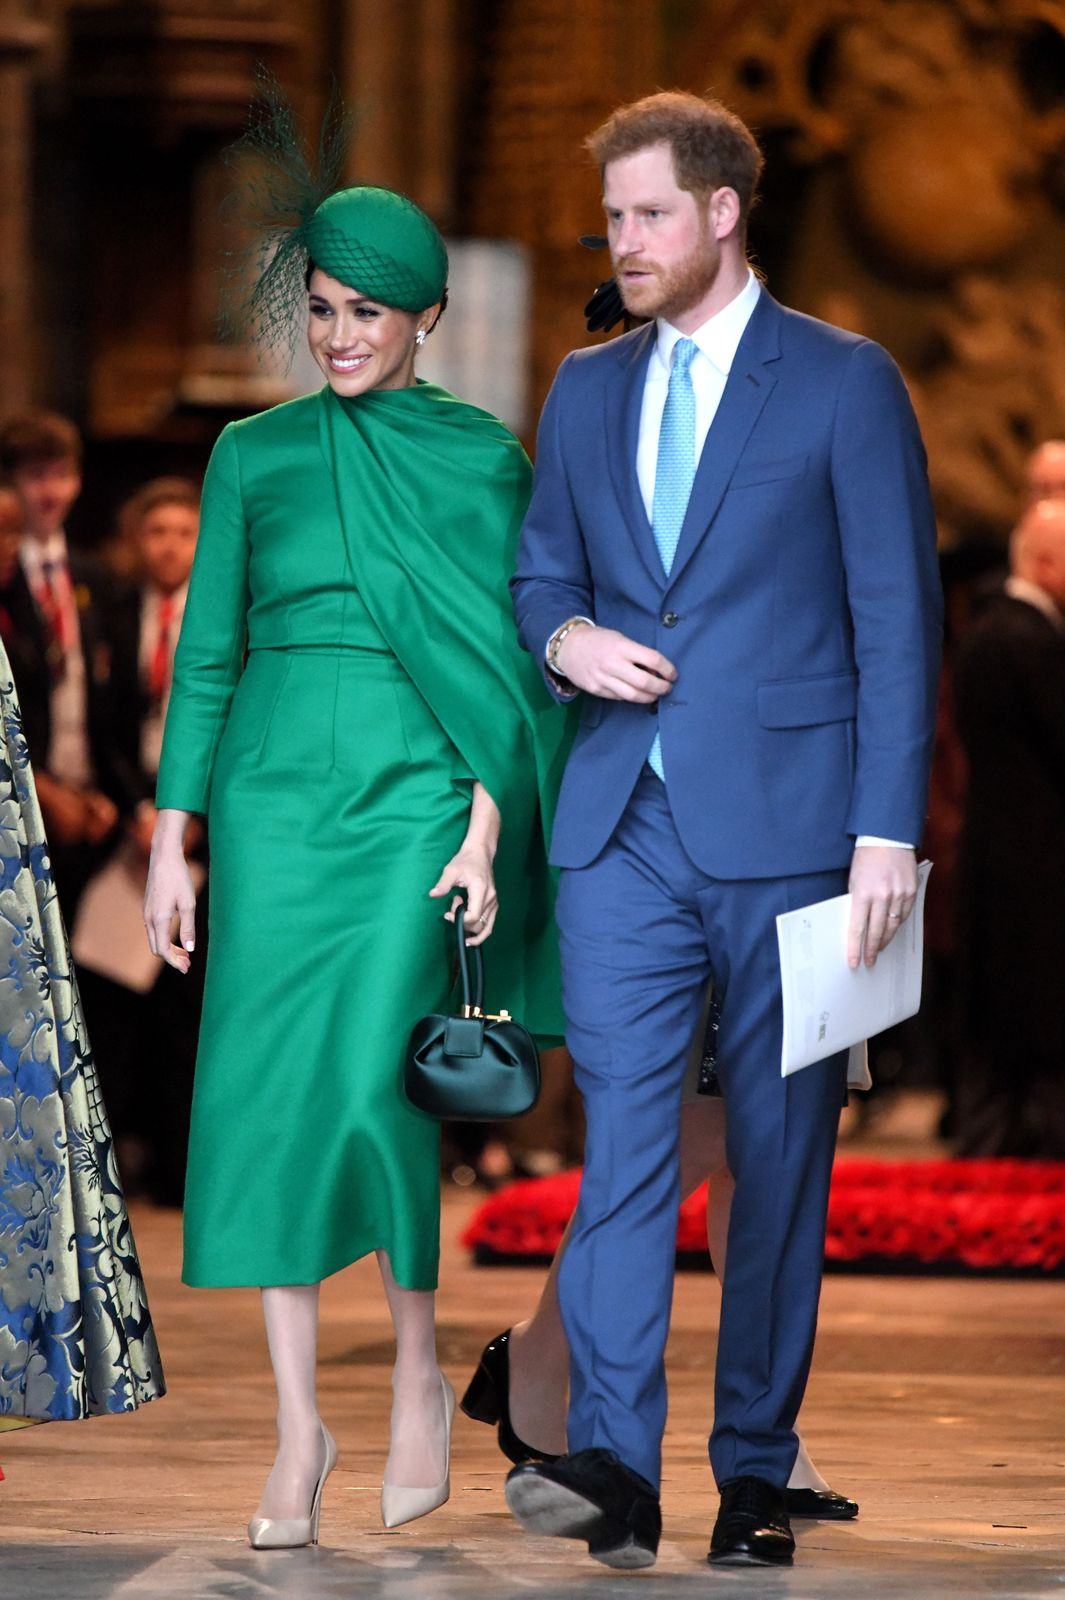 Meghan Markle and Prince Harry after attending the Commonwealth Day Service at Westminster Abbey on March 09, 2020 | Getty Images